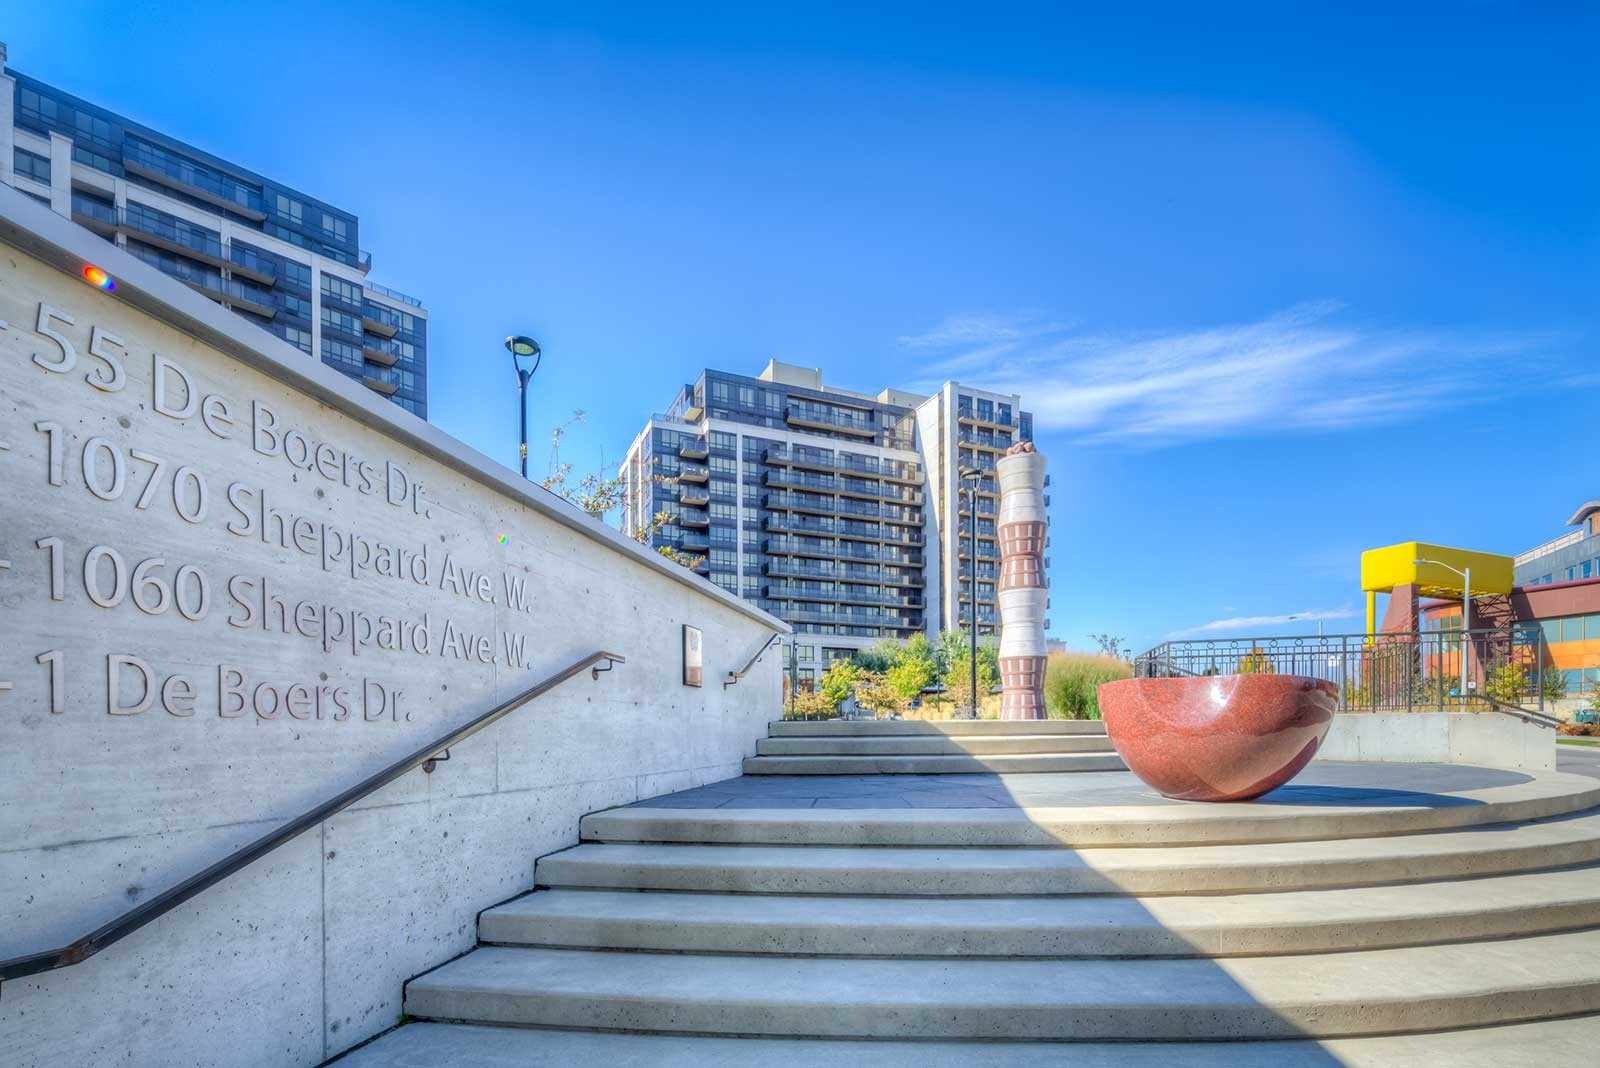 M1 | M2 at 1070 Sheppard Ave W, Toronto 1